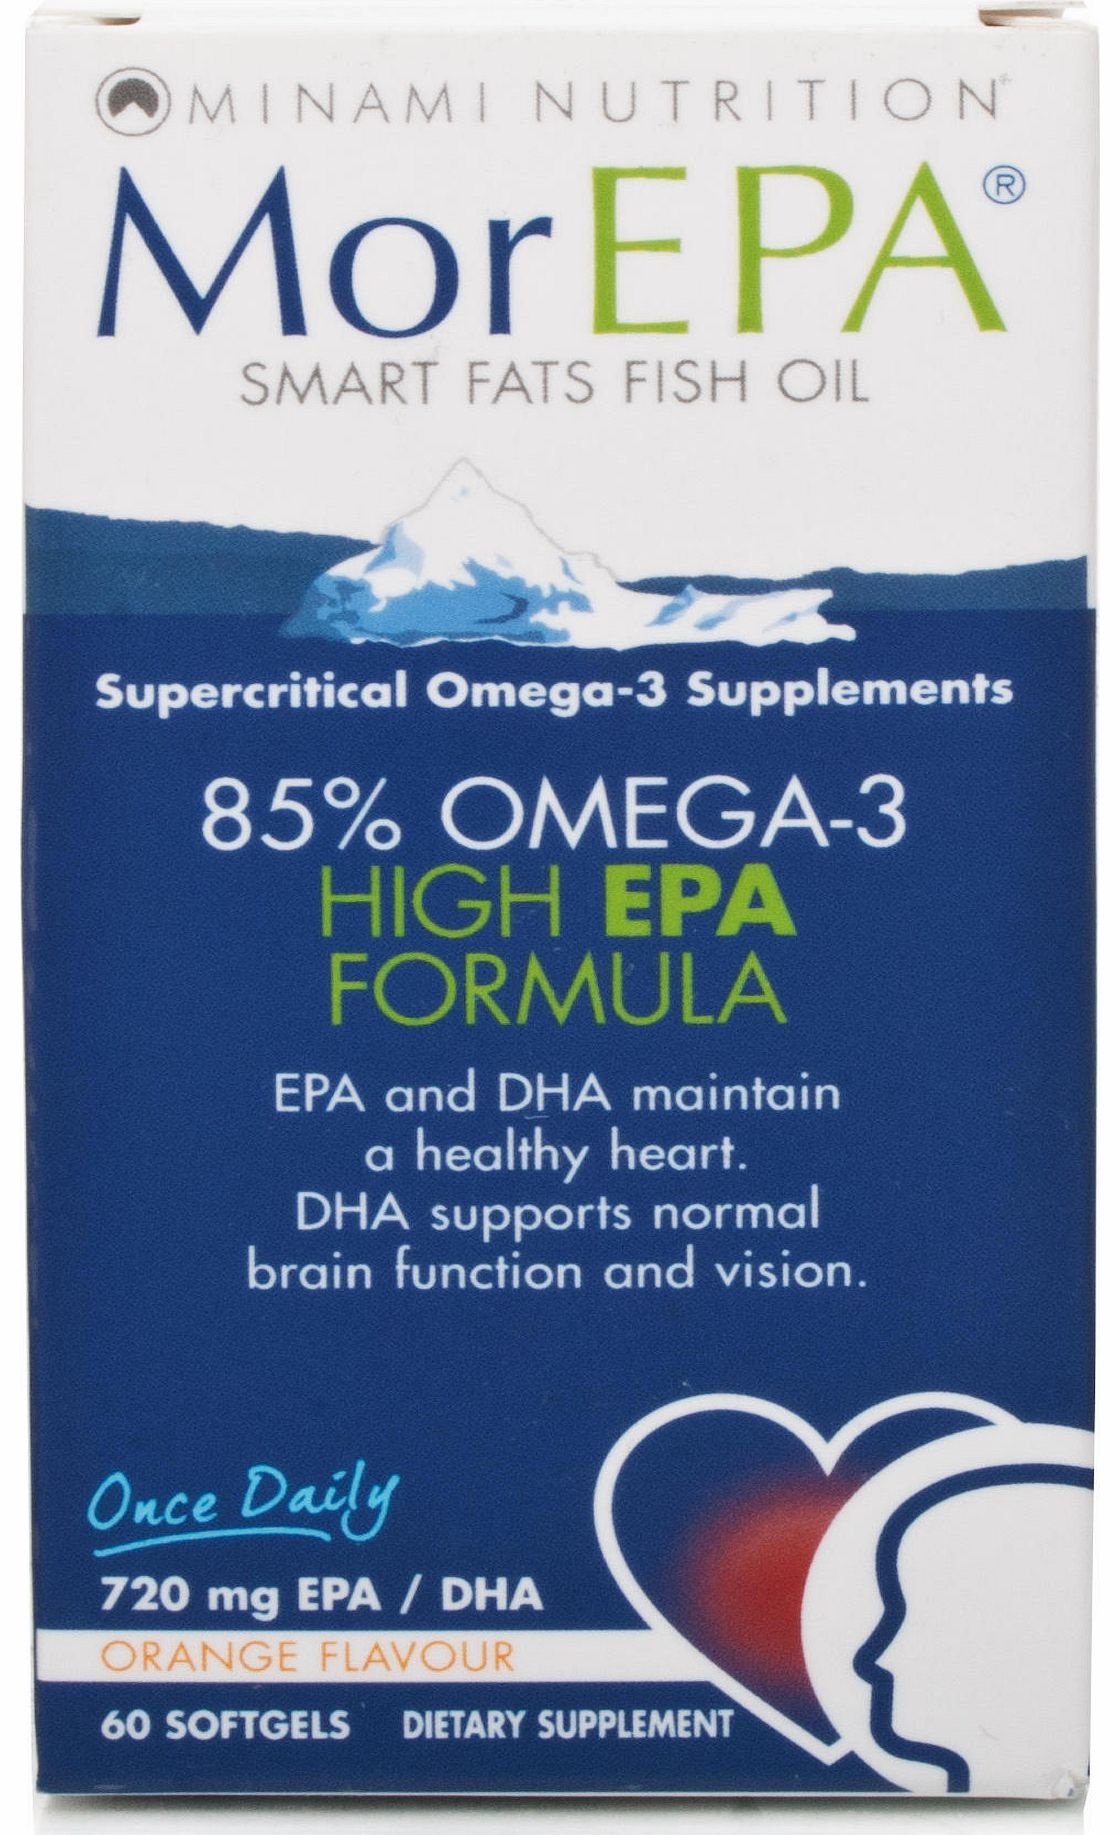 Minami Nutrition MorEPA Smart Fats